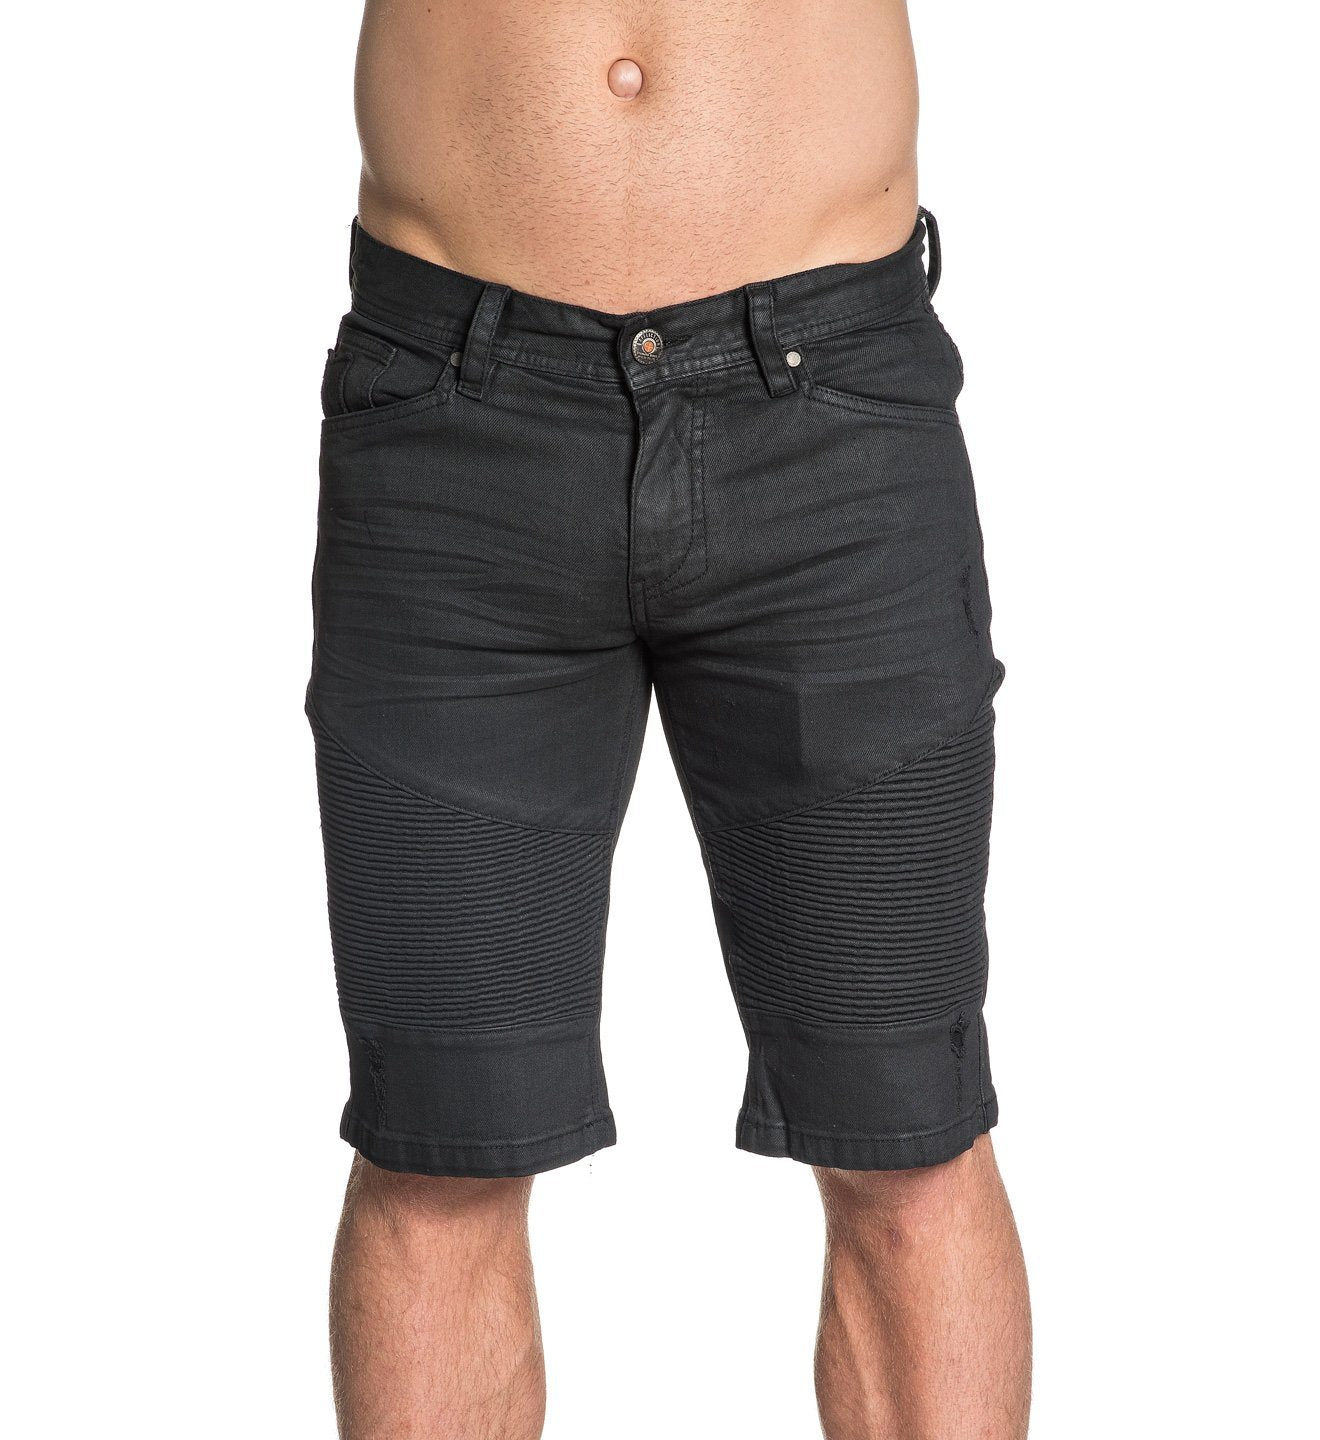 Quentin Shorts - Mens Shorts And Boardshorts - Affliction Clothing